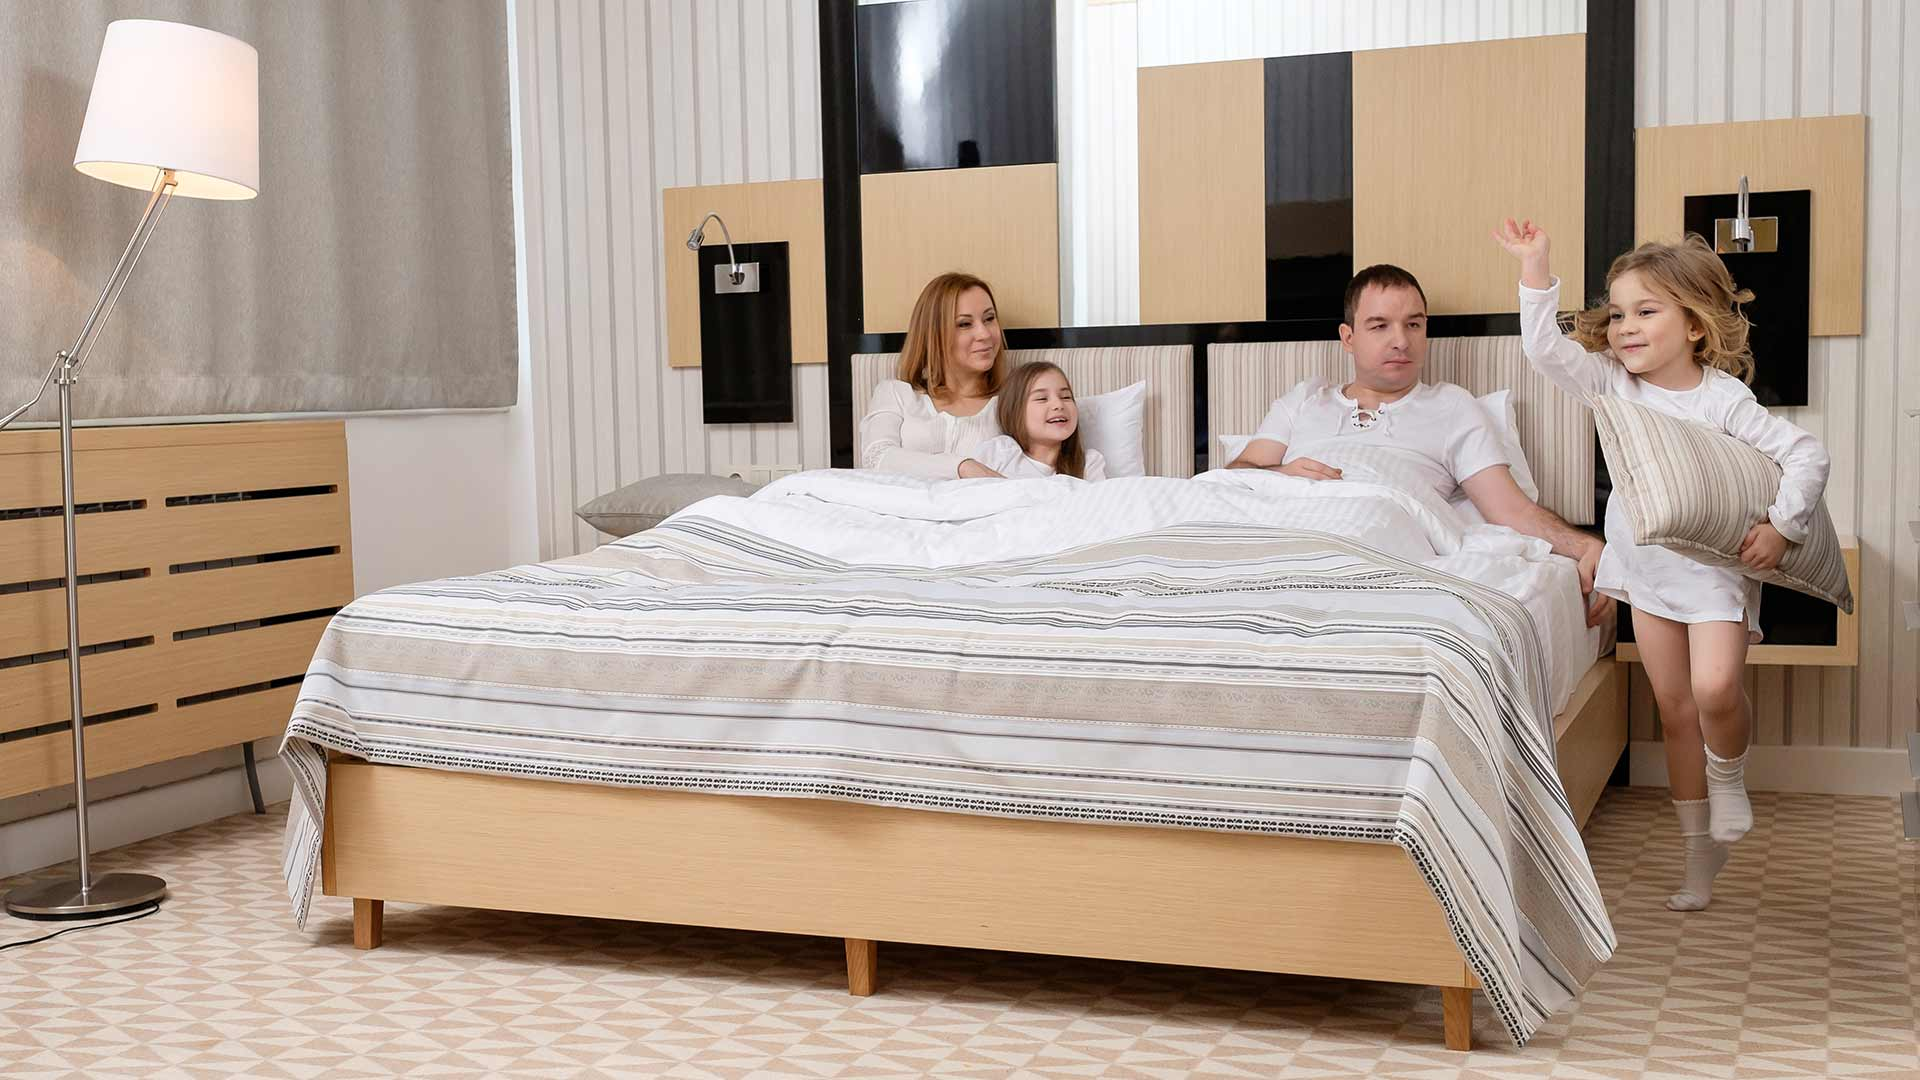 rooms-with-kids-01